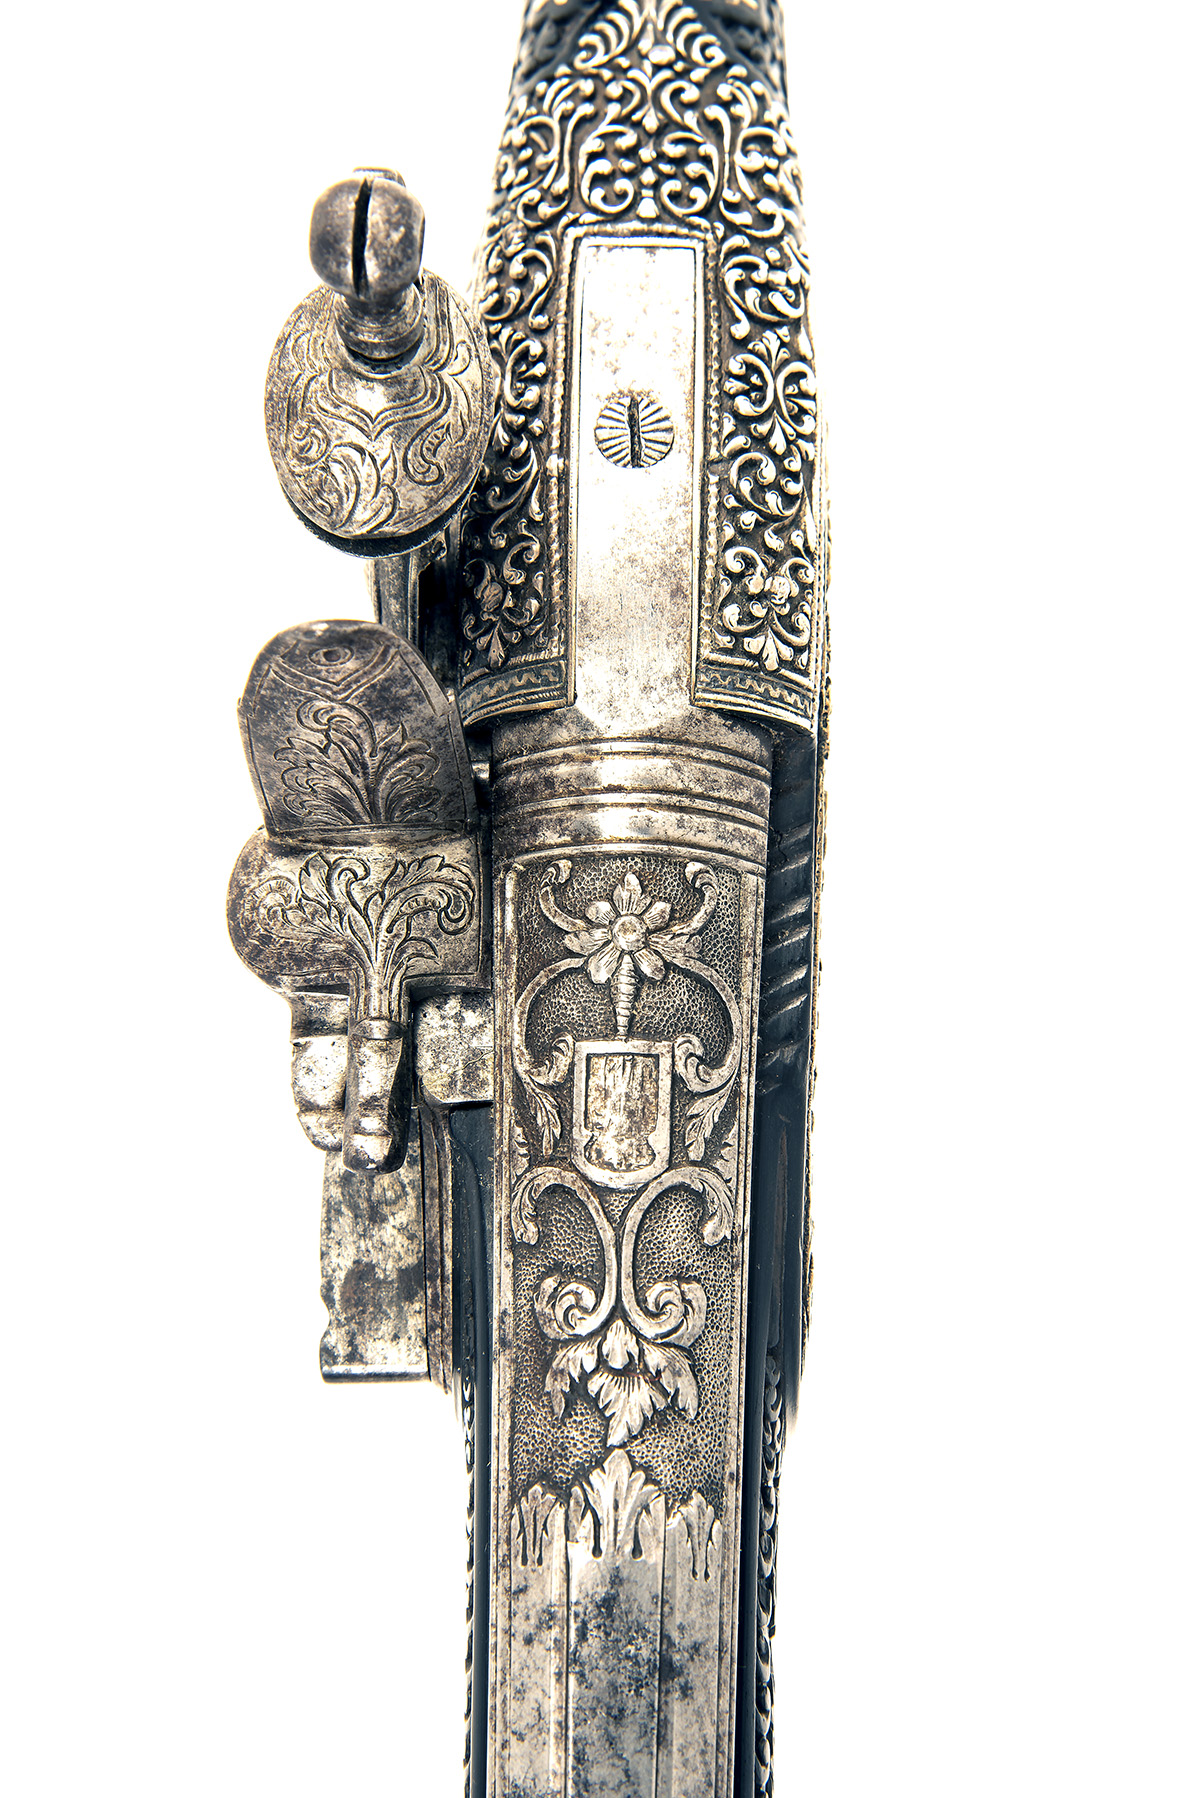 A FINE PAIR OF 22-BORE FLINTLOCK HOLSTER-PISTOL WITH EBONY STOCKS AND NIELLO DECORATION, UNSIGNED, - Image 9 of 10